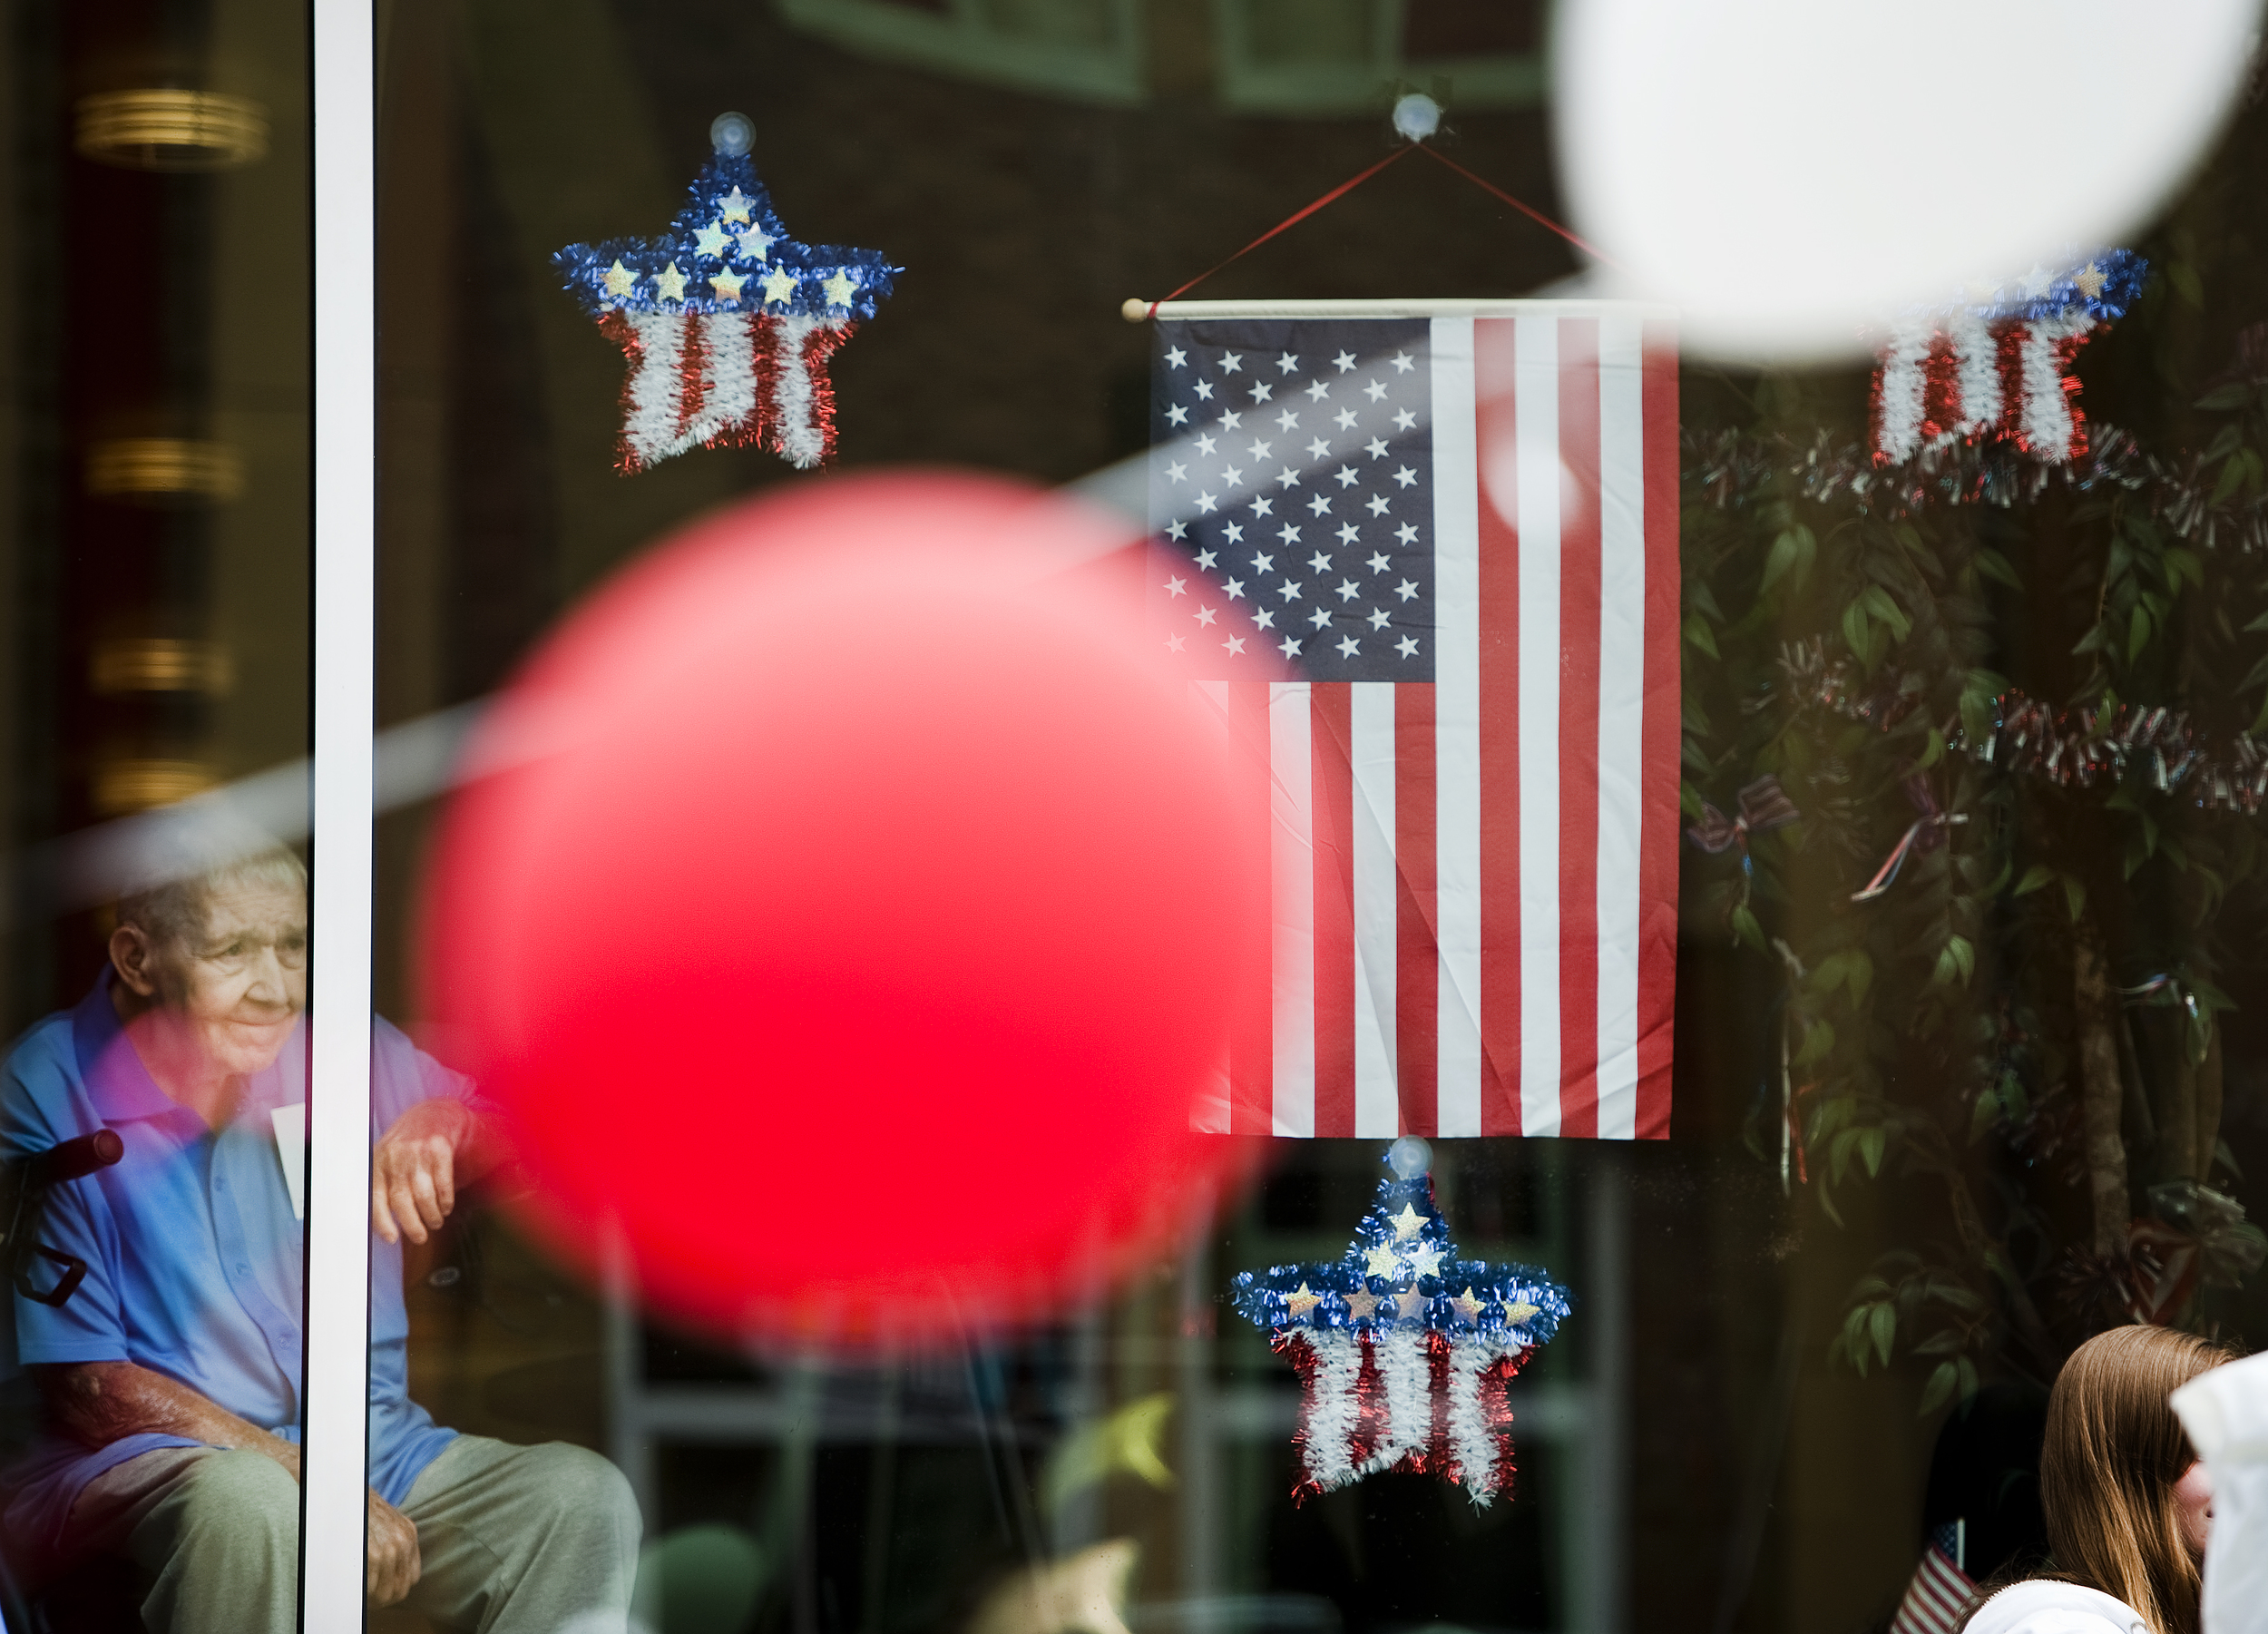 """Army veteran Darrell Moody, 88, of Latrobe watches floats from inside his assisted living home during the 4th of July Parade on Saturday, July 4, 2015 in Latrobe. """"I am a World War II veteran, a Korean veteran and a veteran here (in the home),"""" Moody said laughing."""